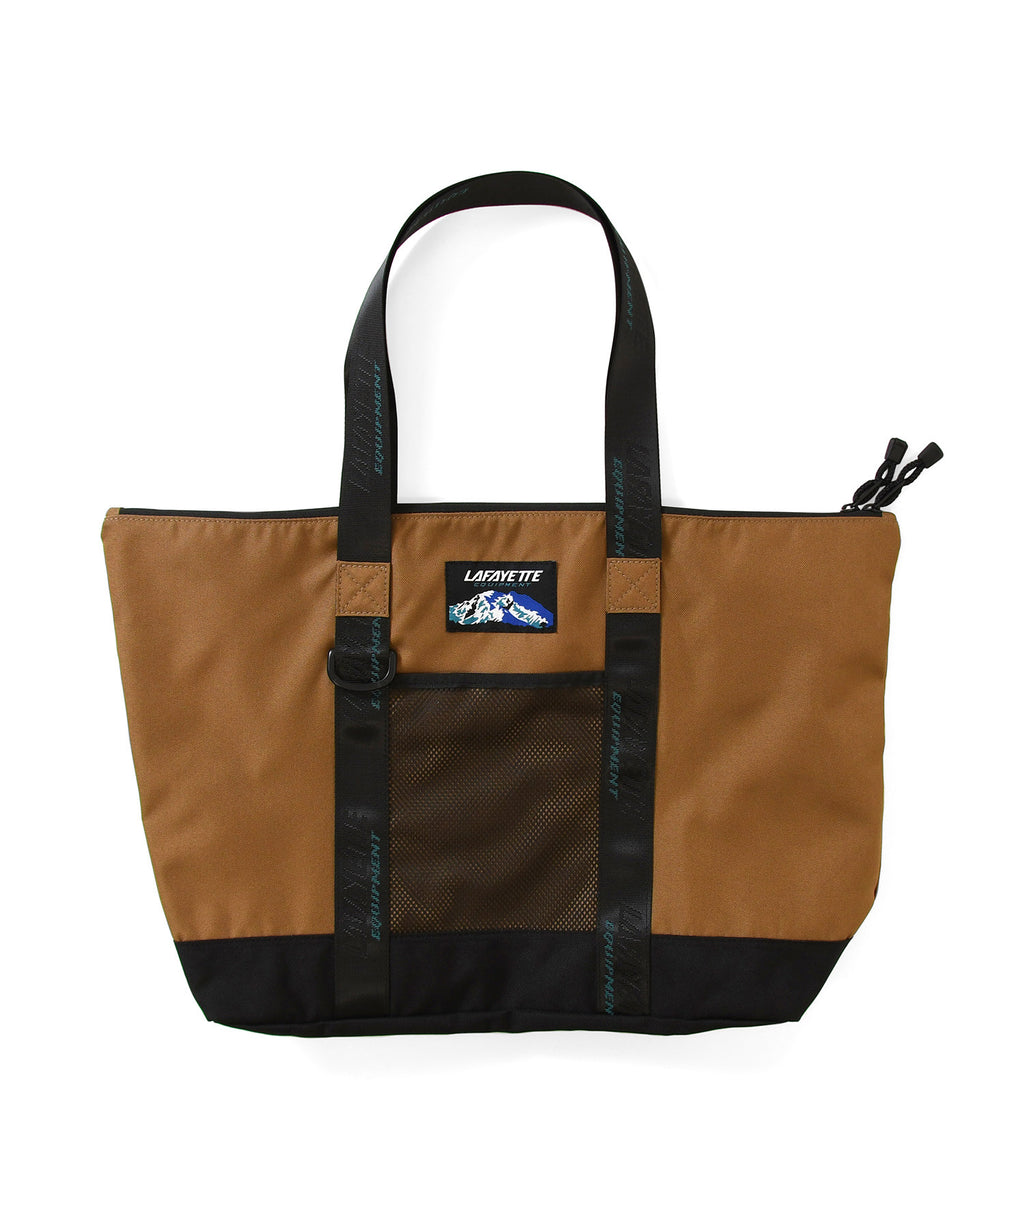 Lafayette EQUIPMENT LOGO NYLON TOTE BAG LS201503 BEIGE